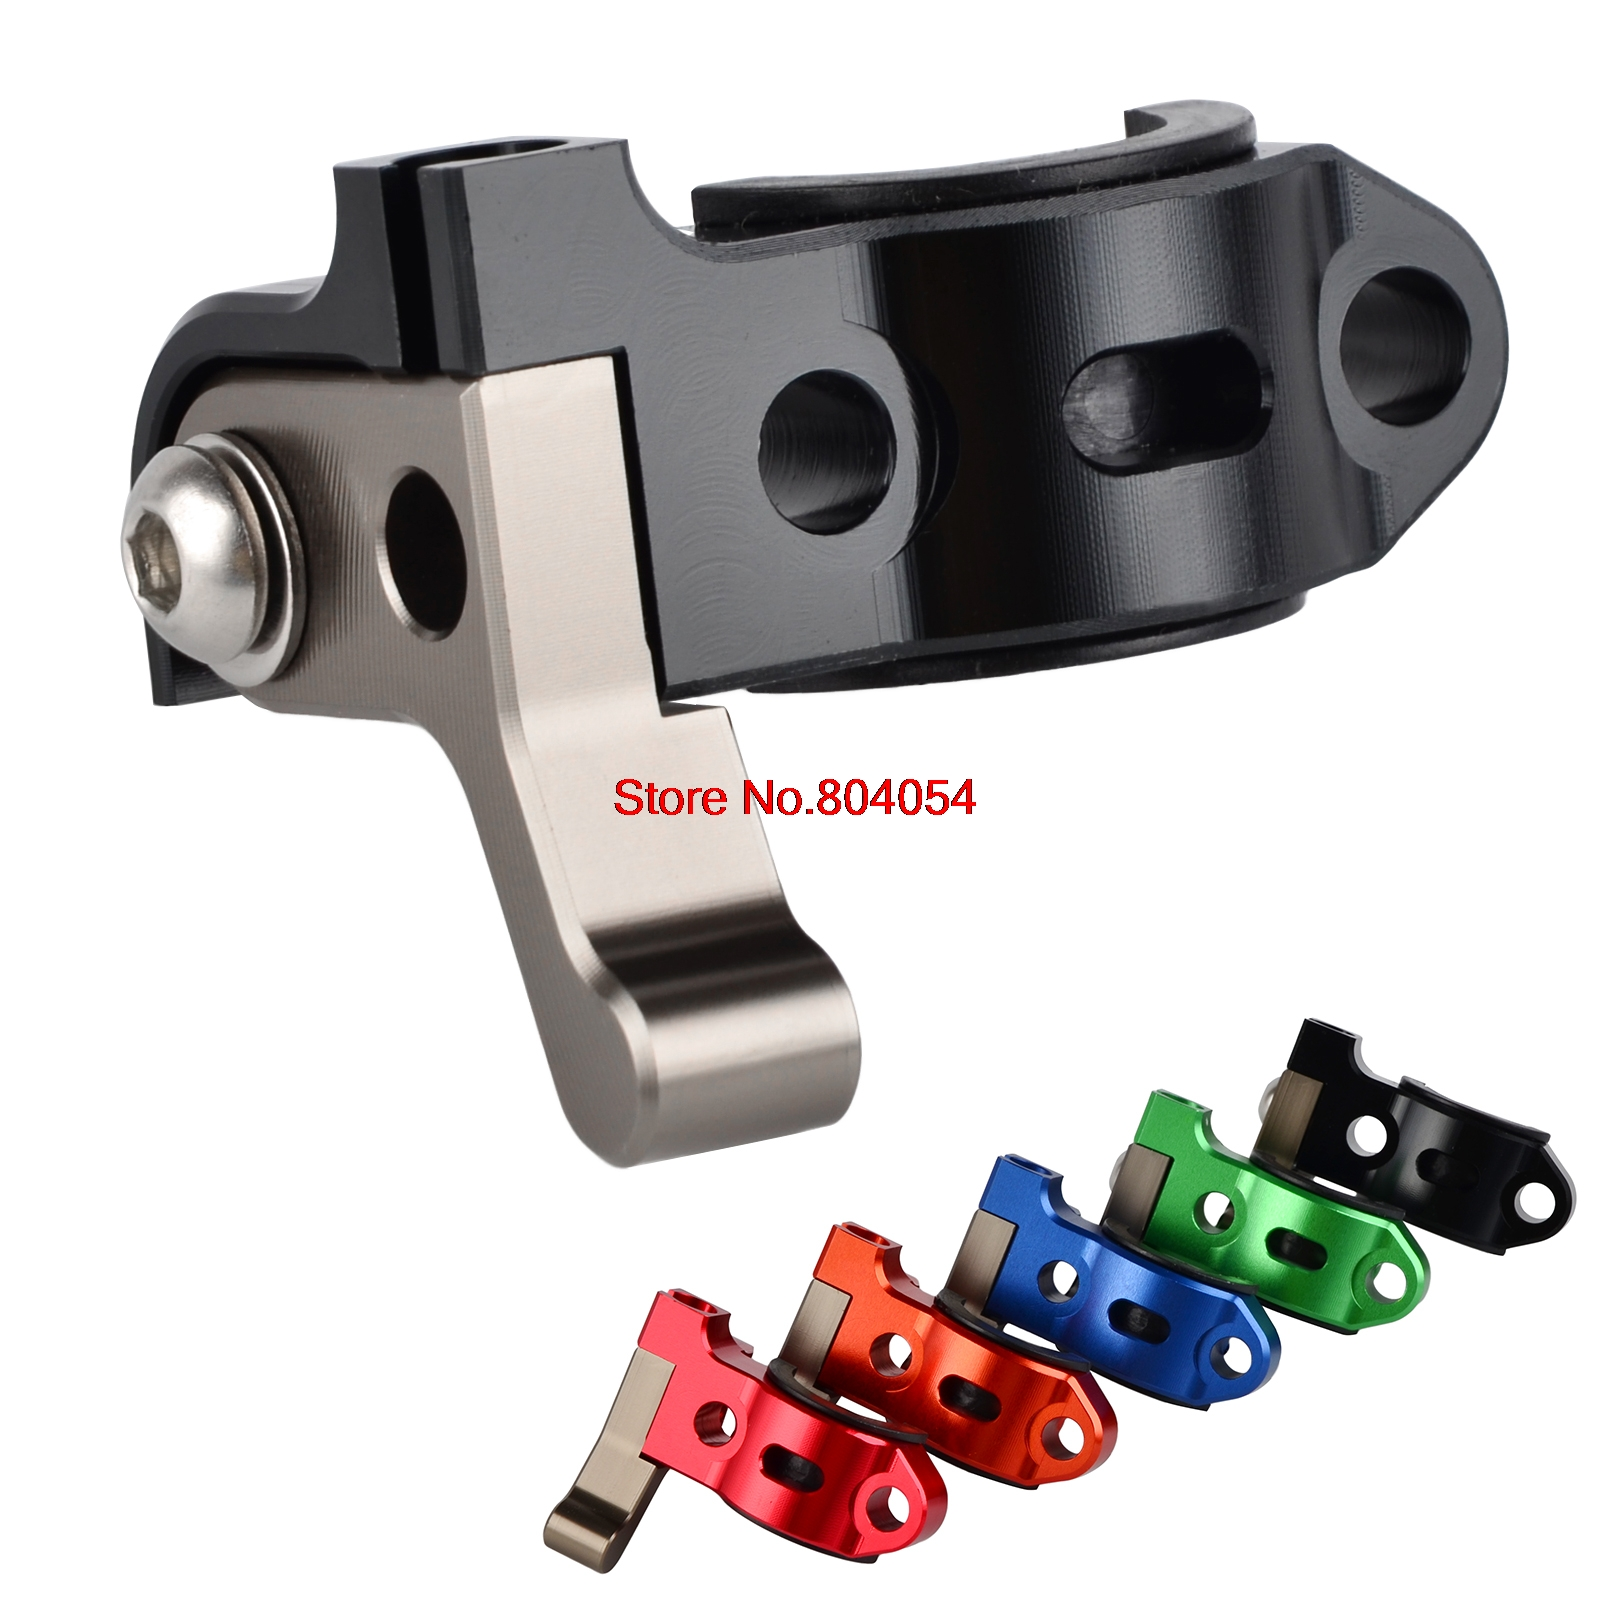 Rotating Bar Clamp Hot Start Lever For Honda XR250L XR250R XR400R XR600R XR650L XR650R XR 250L 250R 400R 600R 650L 650R bt151 bt151 600r to 220